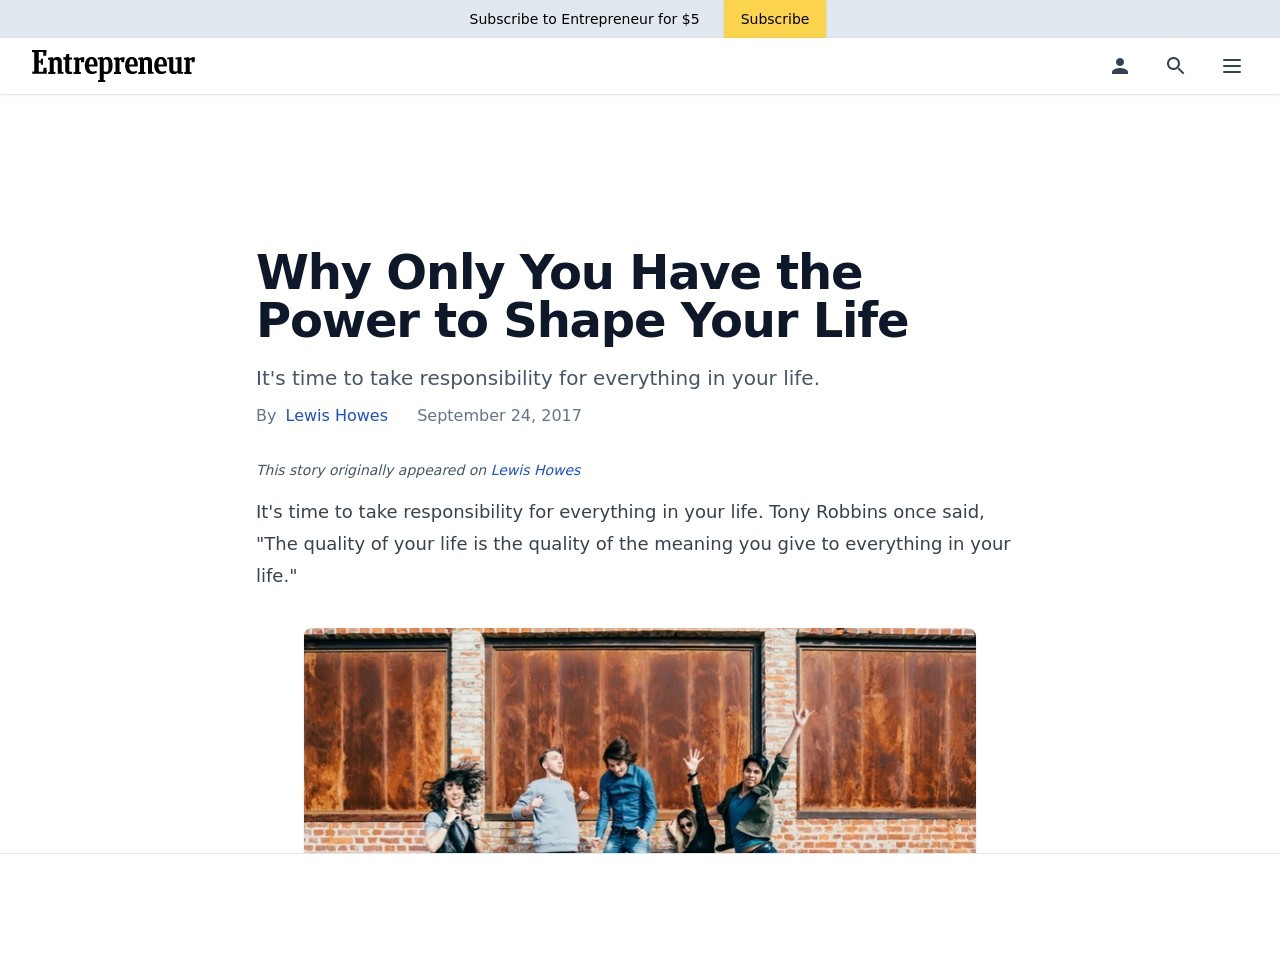 Why Only You Have the Power to Shape Your Life